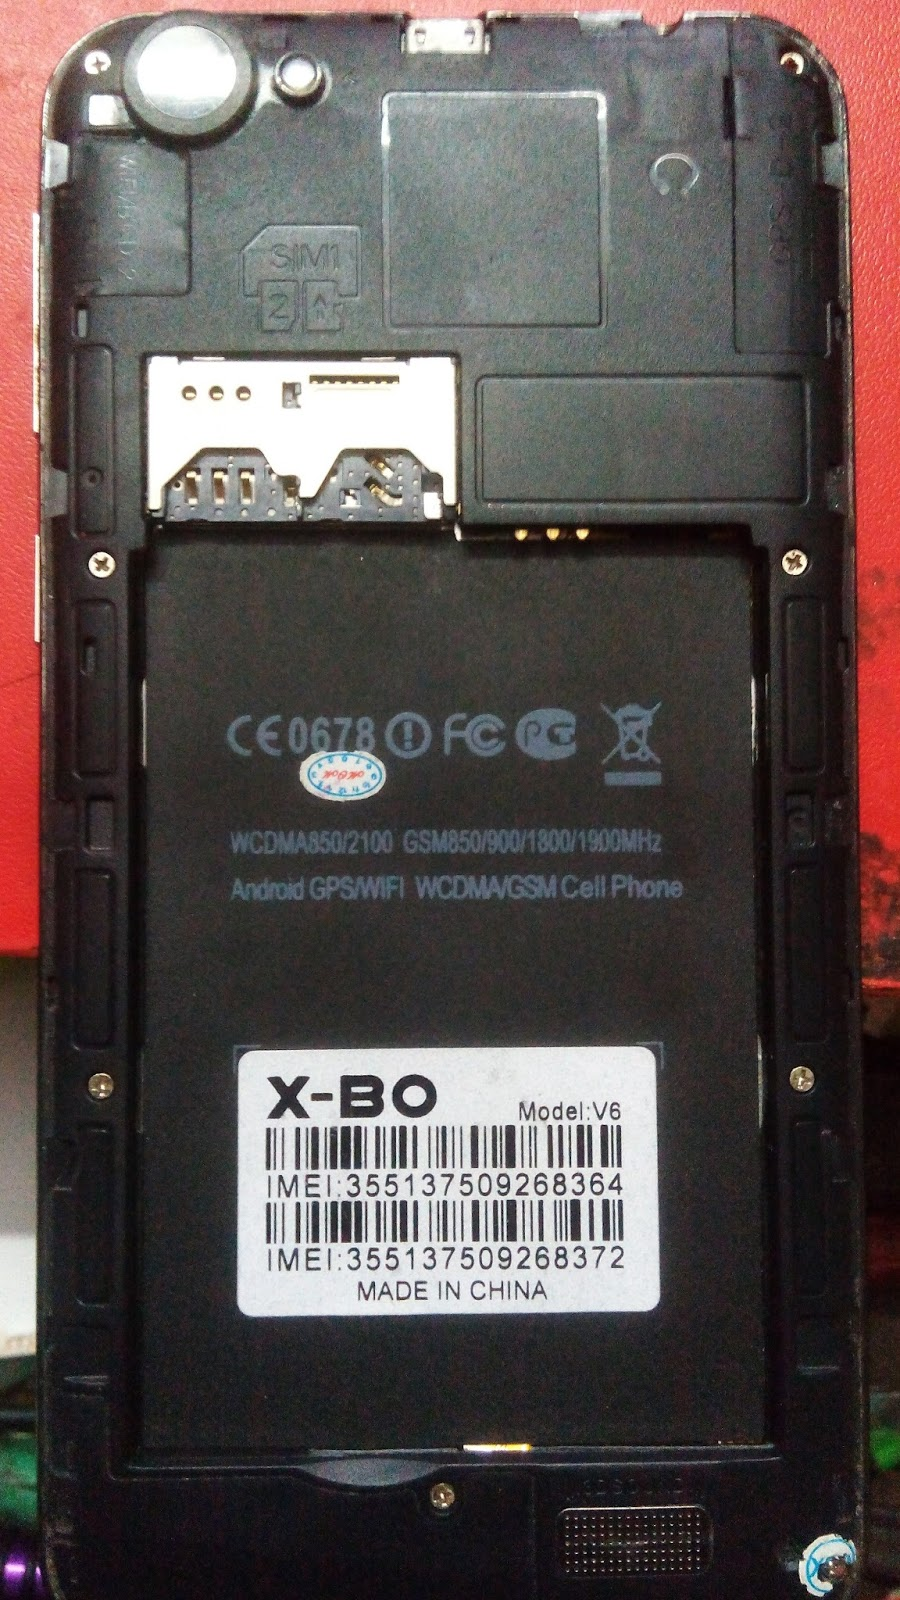 X-BO V6 MT6572 Official Stock Firmware (Flash File) Free